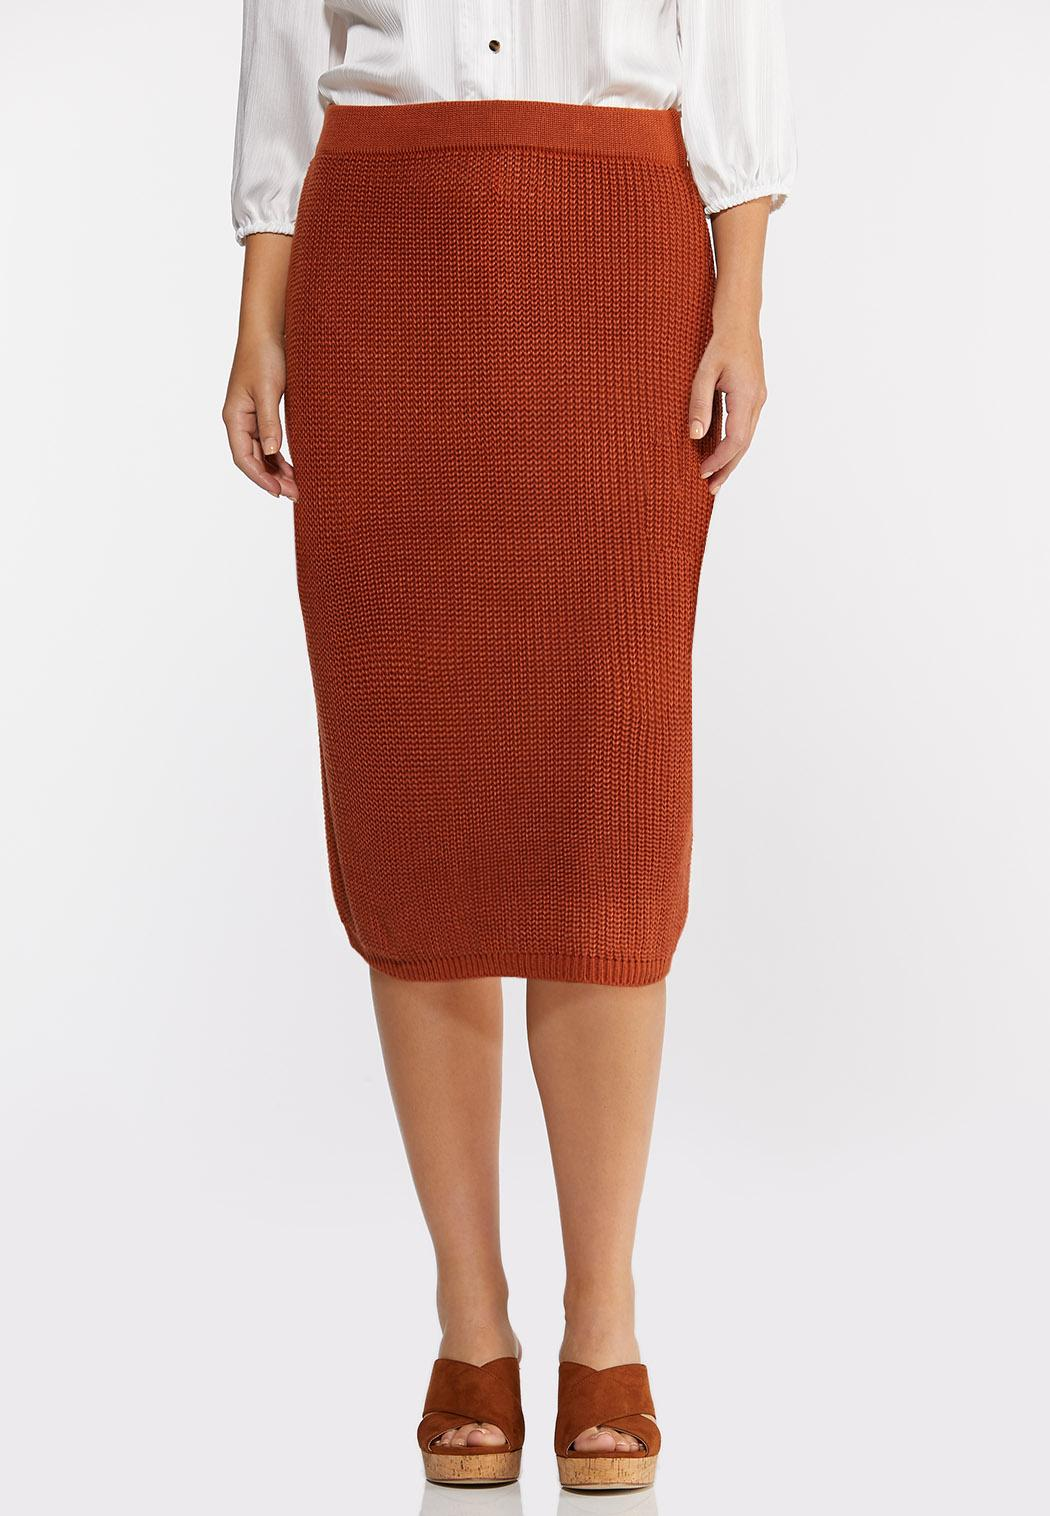 Plus Size Rust Sweater Skirt